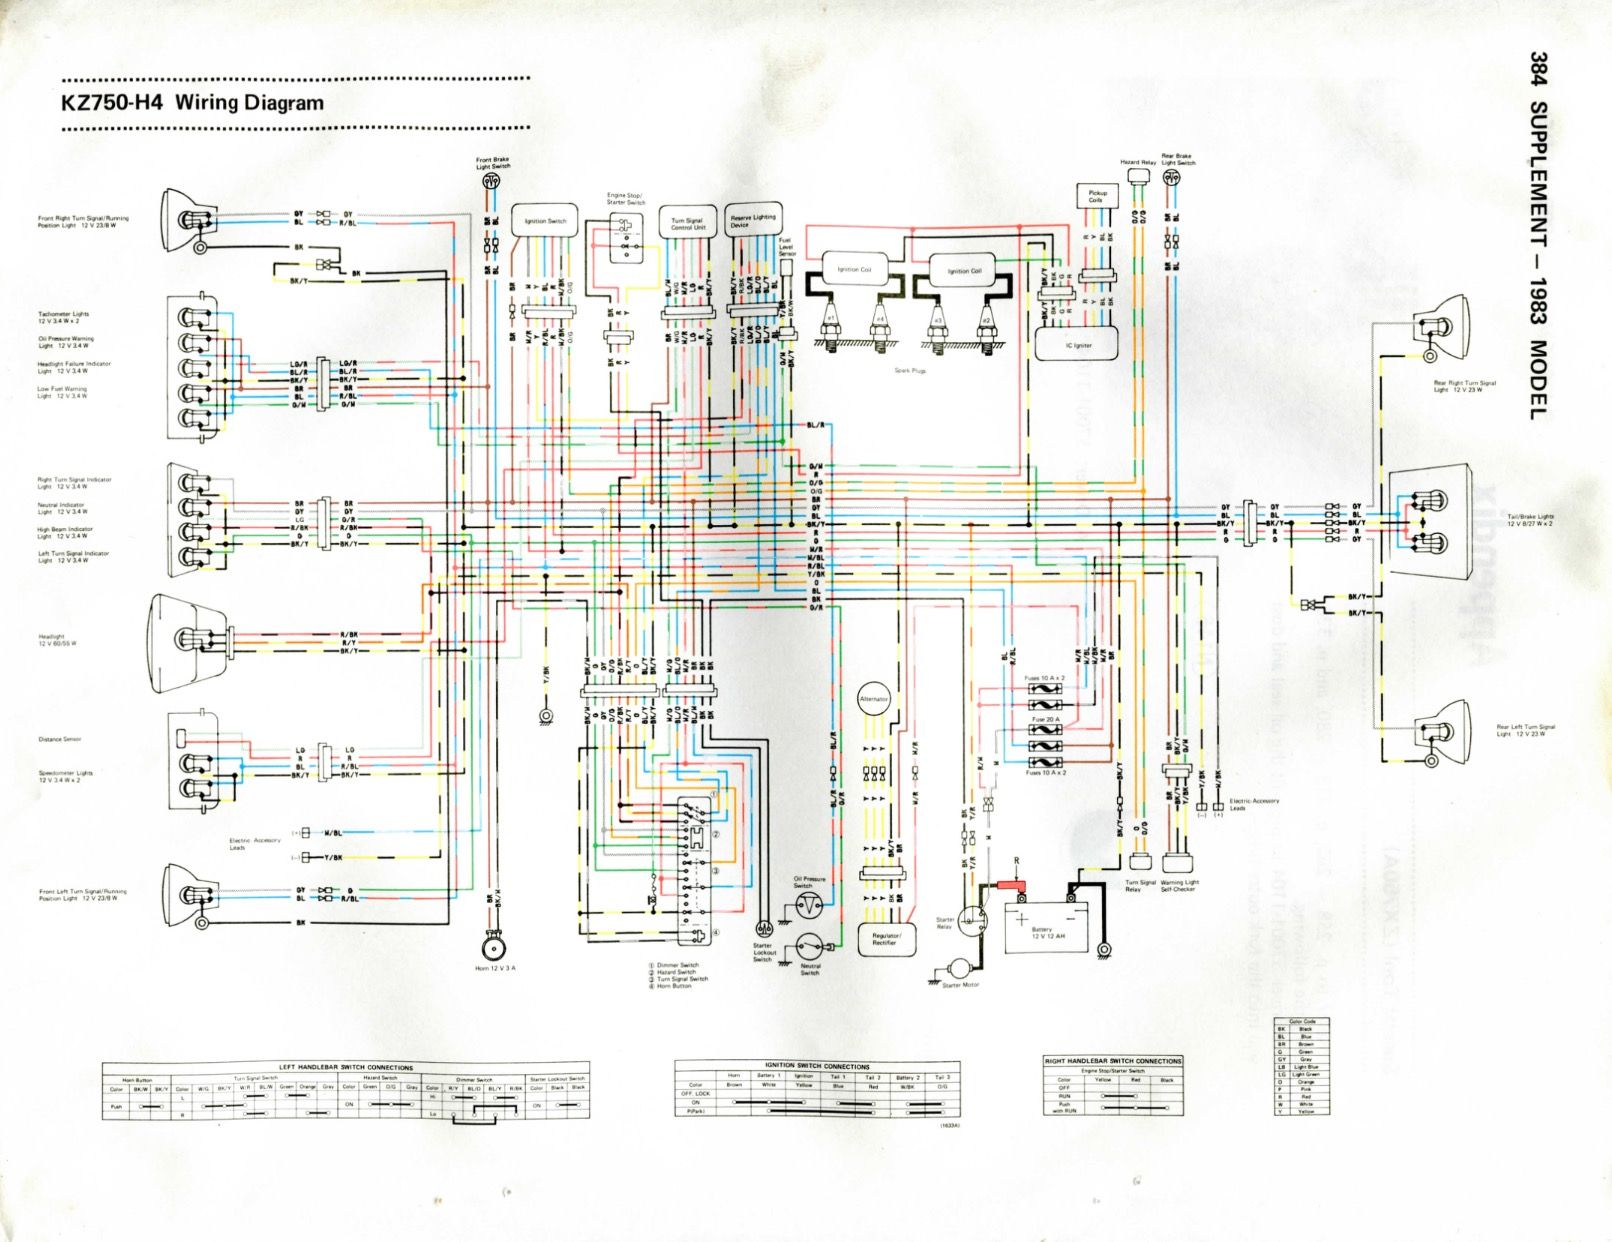 small resolution of kawasaki kz750 wiring diagram